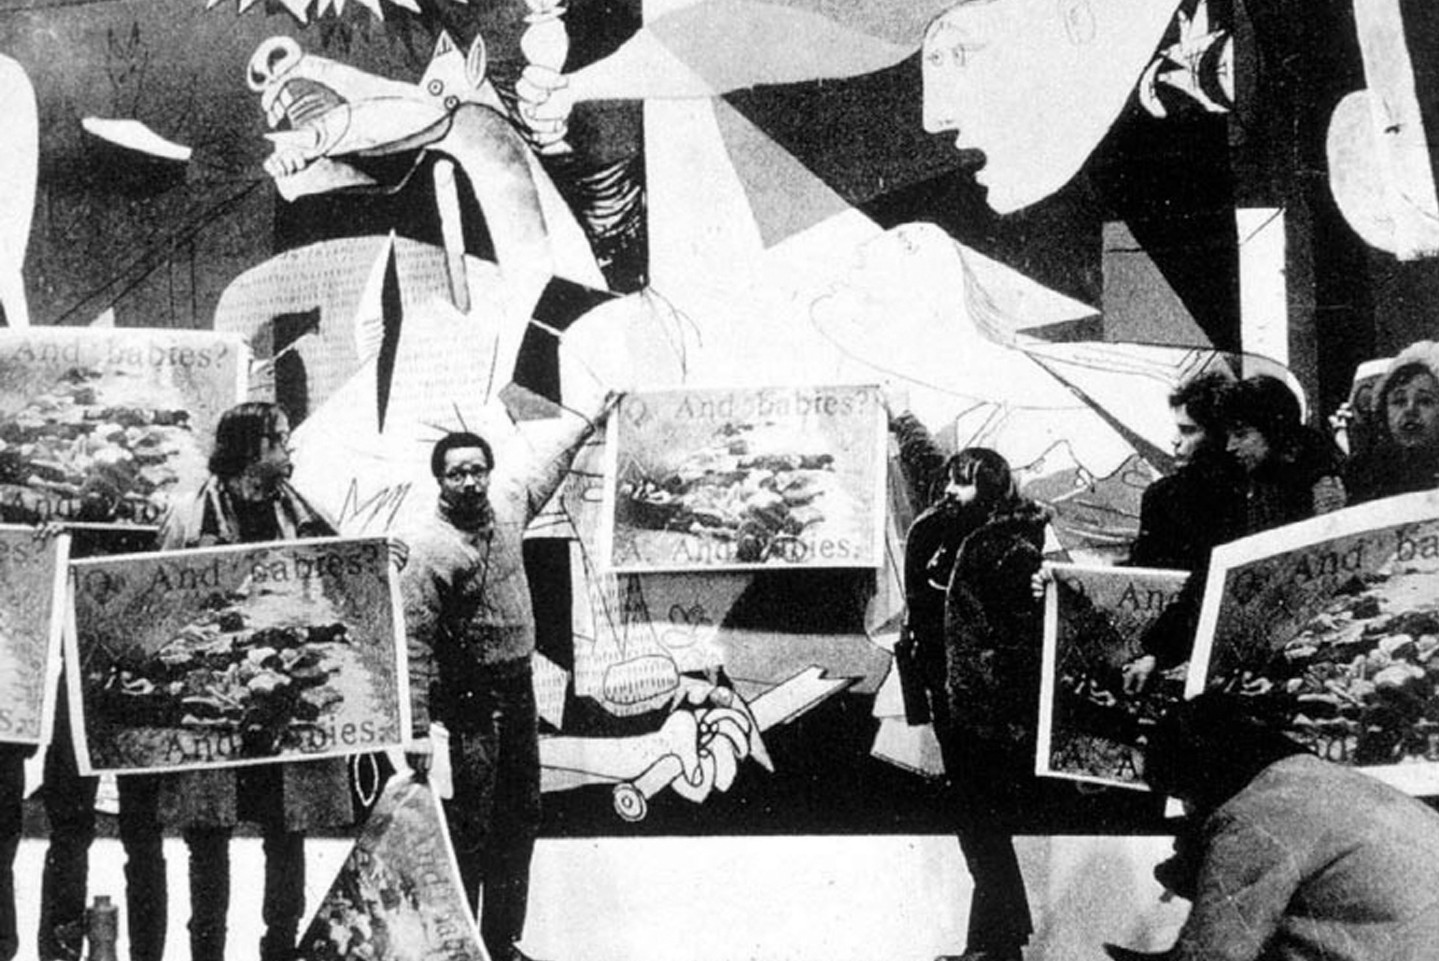 http://moussemagazine.it/app/uploads/02-art-workers-coalition_protest-in-front-of-picasso-s-guernica_moma-ny_1970-e1479816380742.jpg